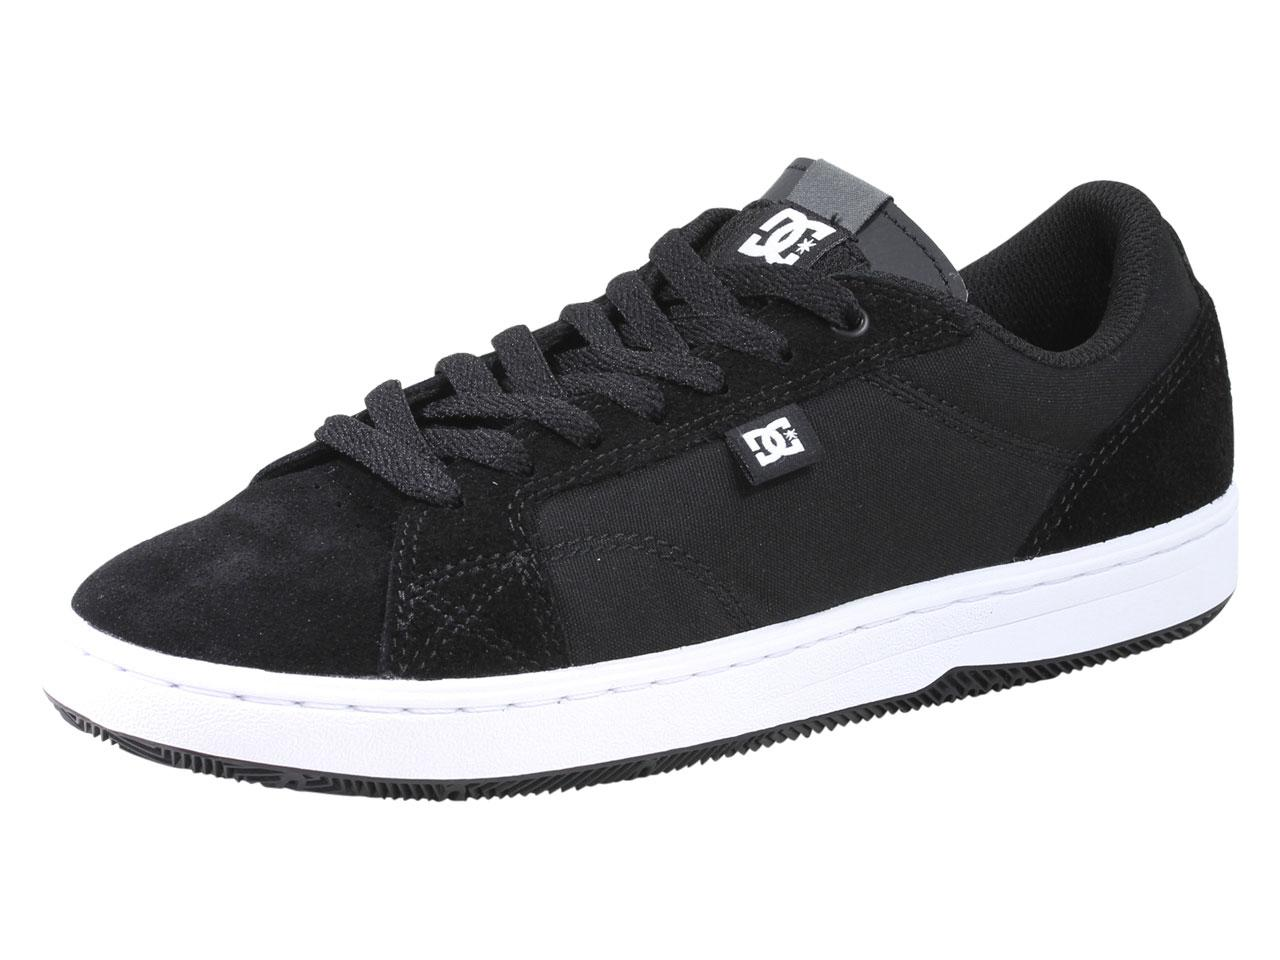 Image of DC Men's Astor Skateboarding Sneakers Shoes - Black - 8.5 D(M) US